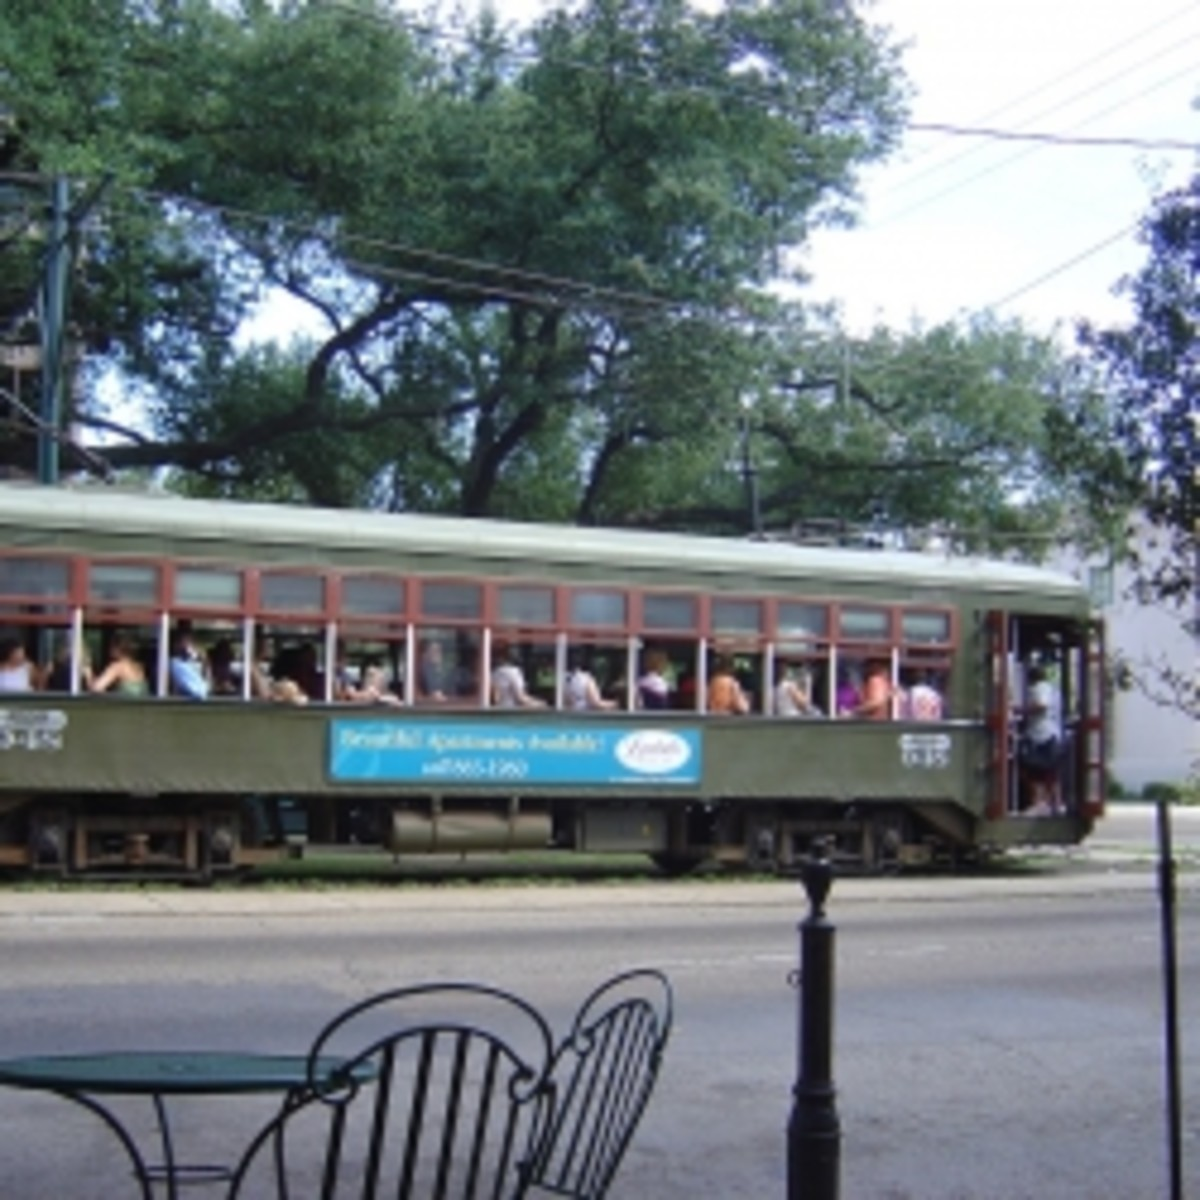 the-sights-and-sounds-of-a-new-orleans-streetcar